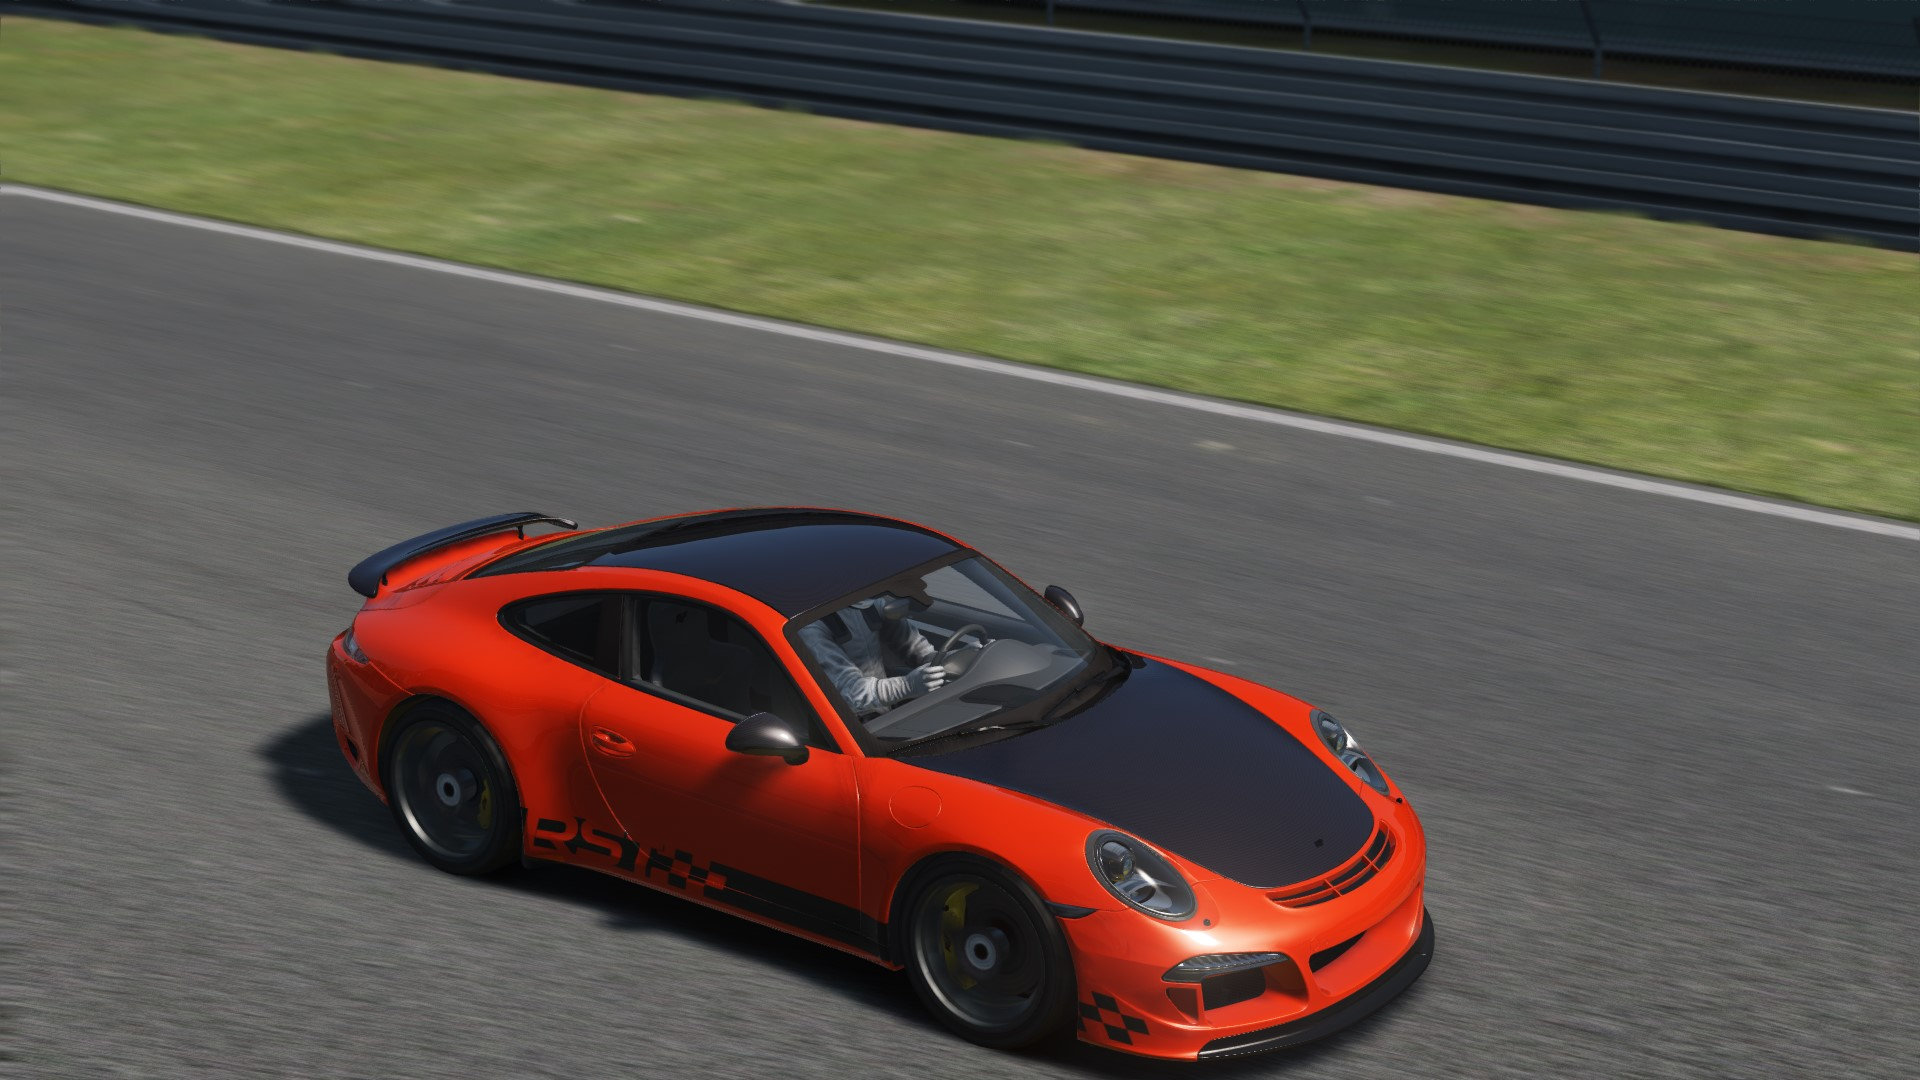 Assetto Corsa 1.5 RUF 991 RGT-8 at Nurburgring 0010.jpg